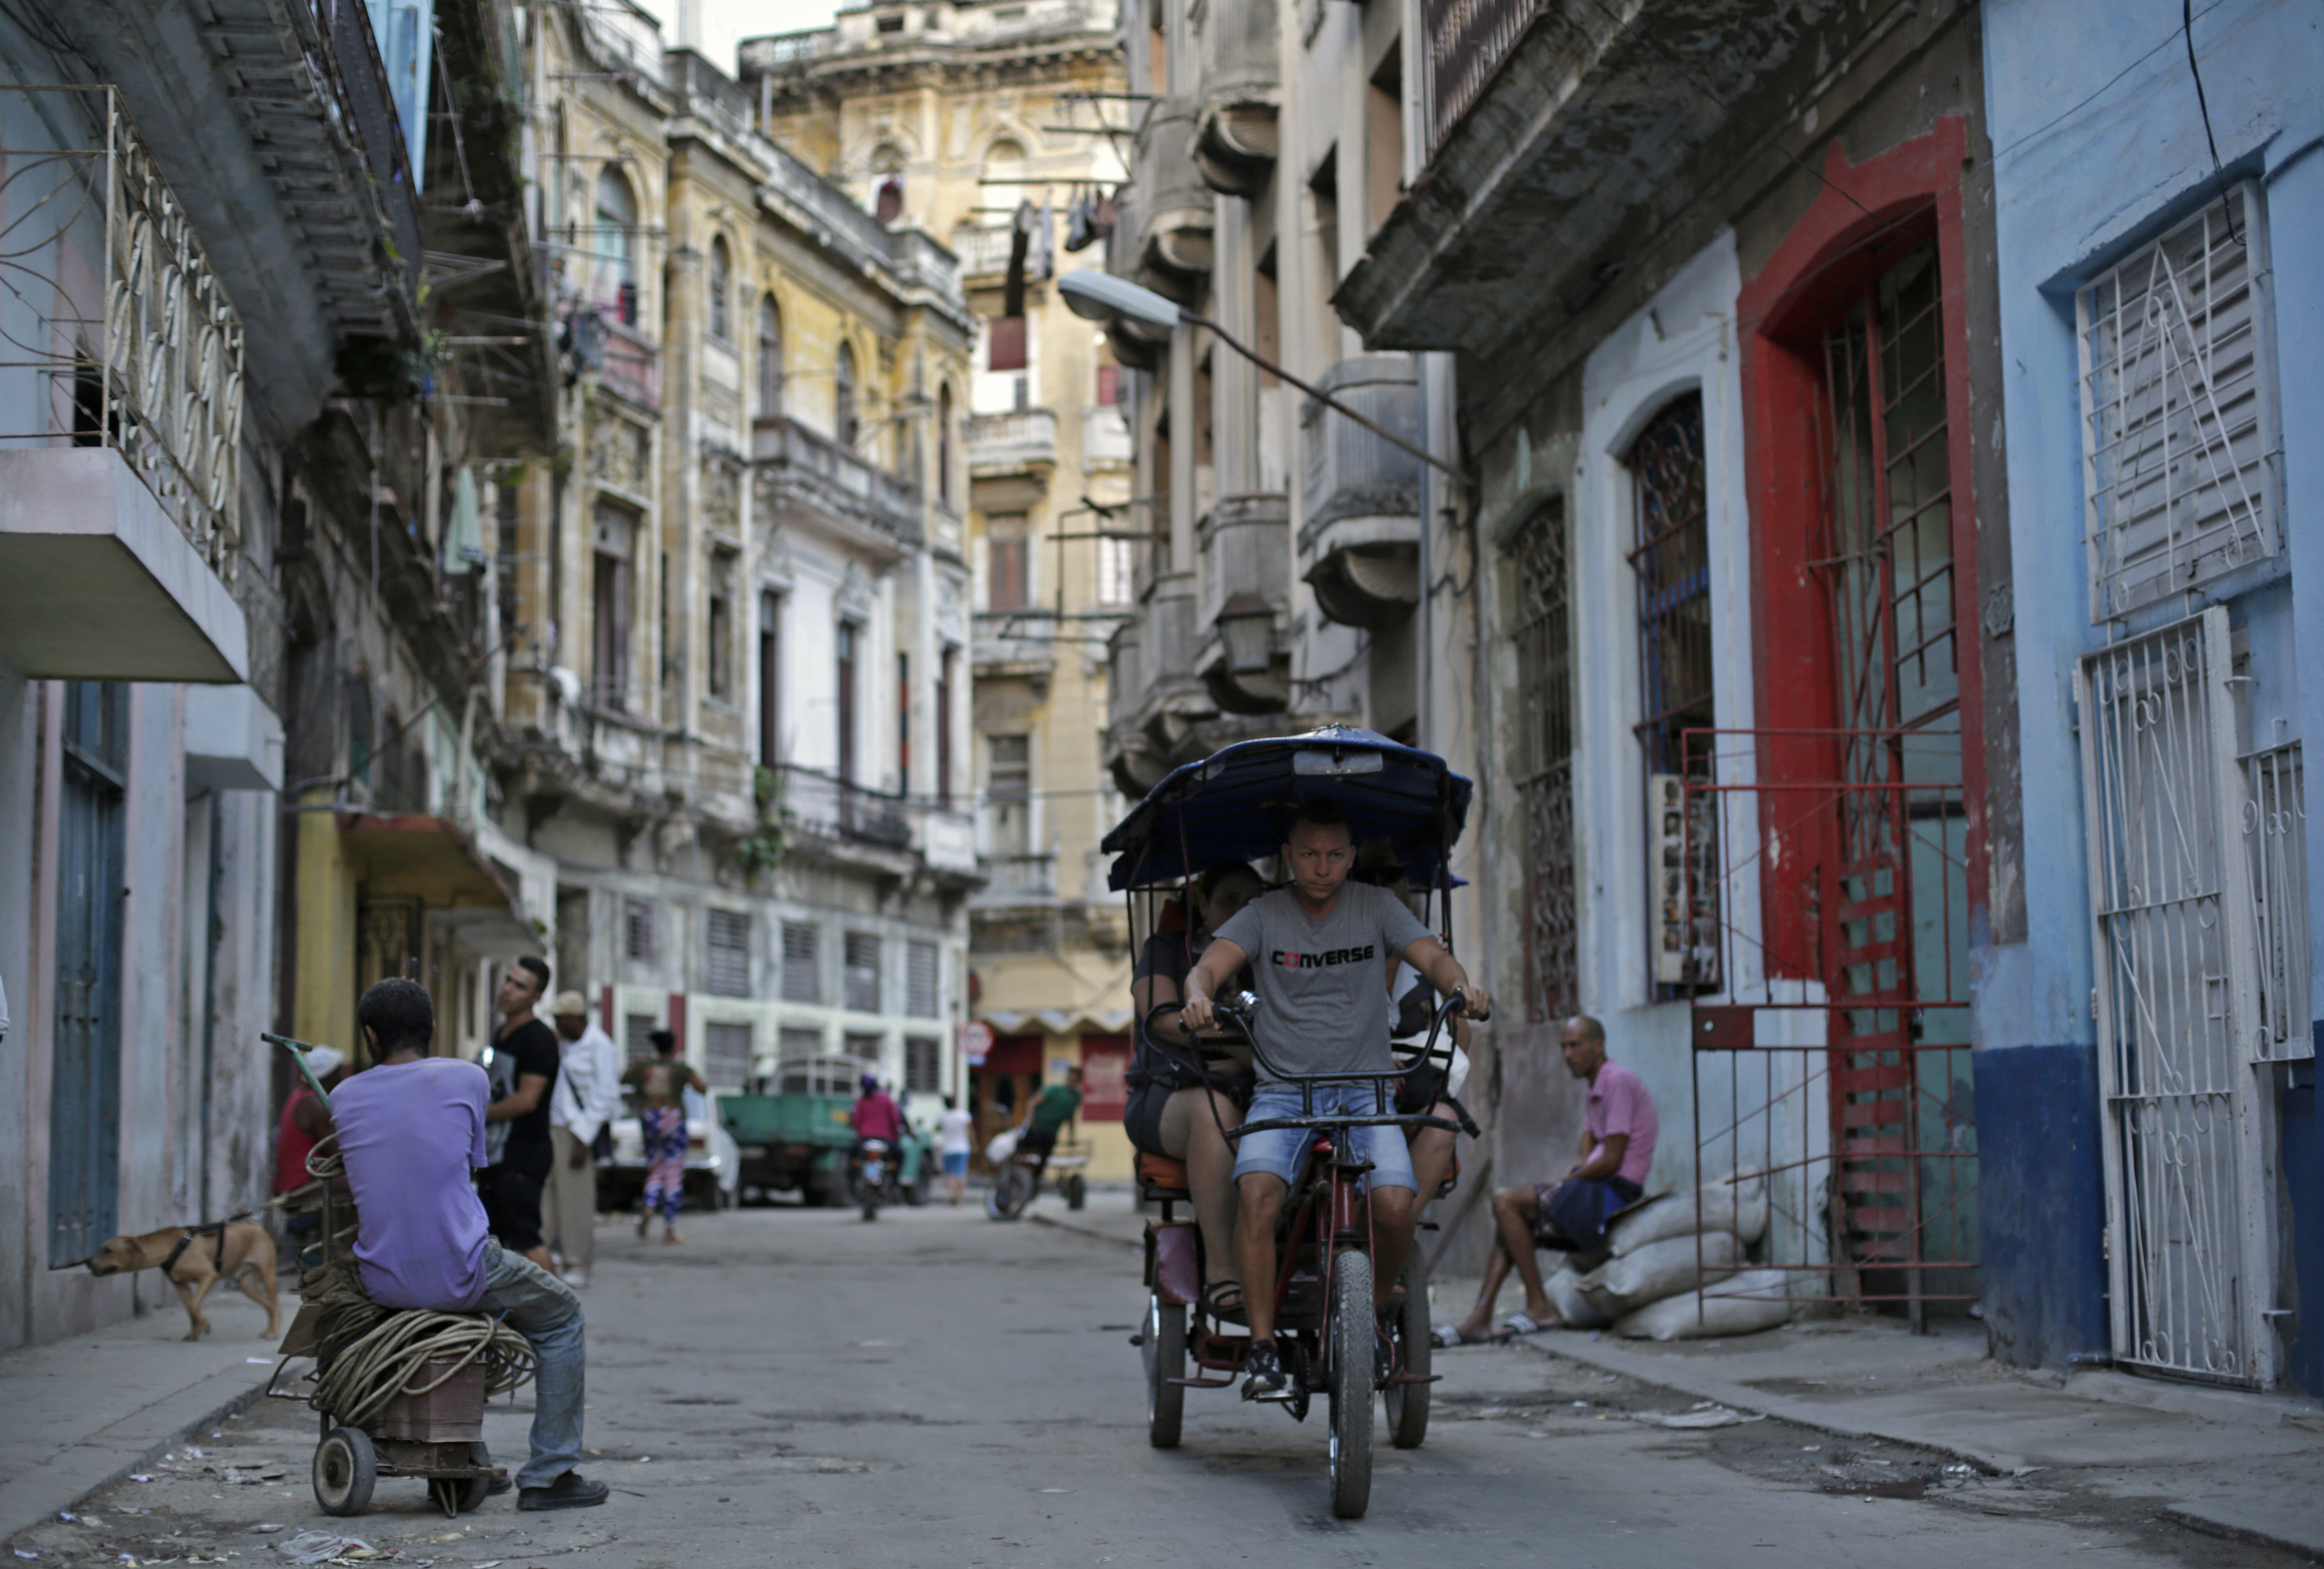 A man fetches passengers on his tricycle taxi in Havana